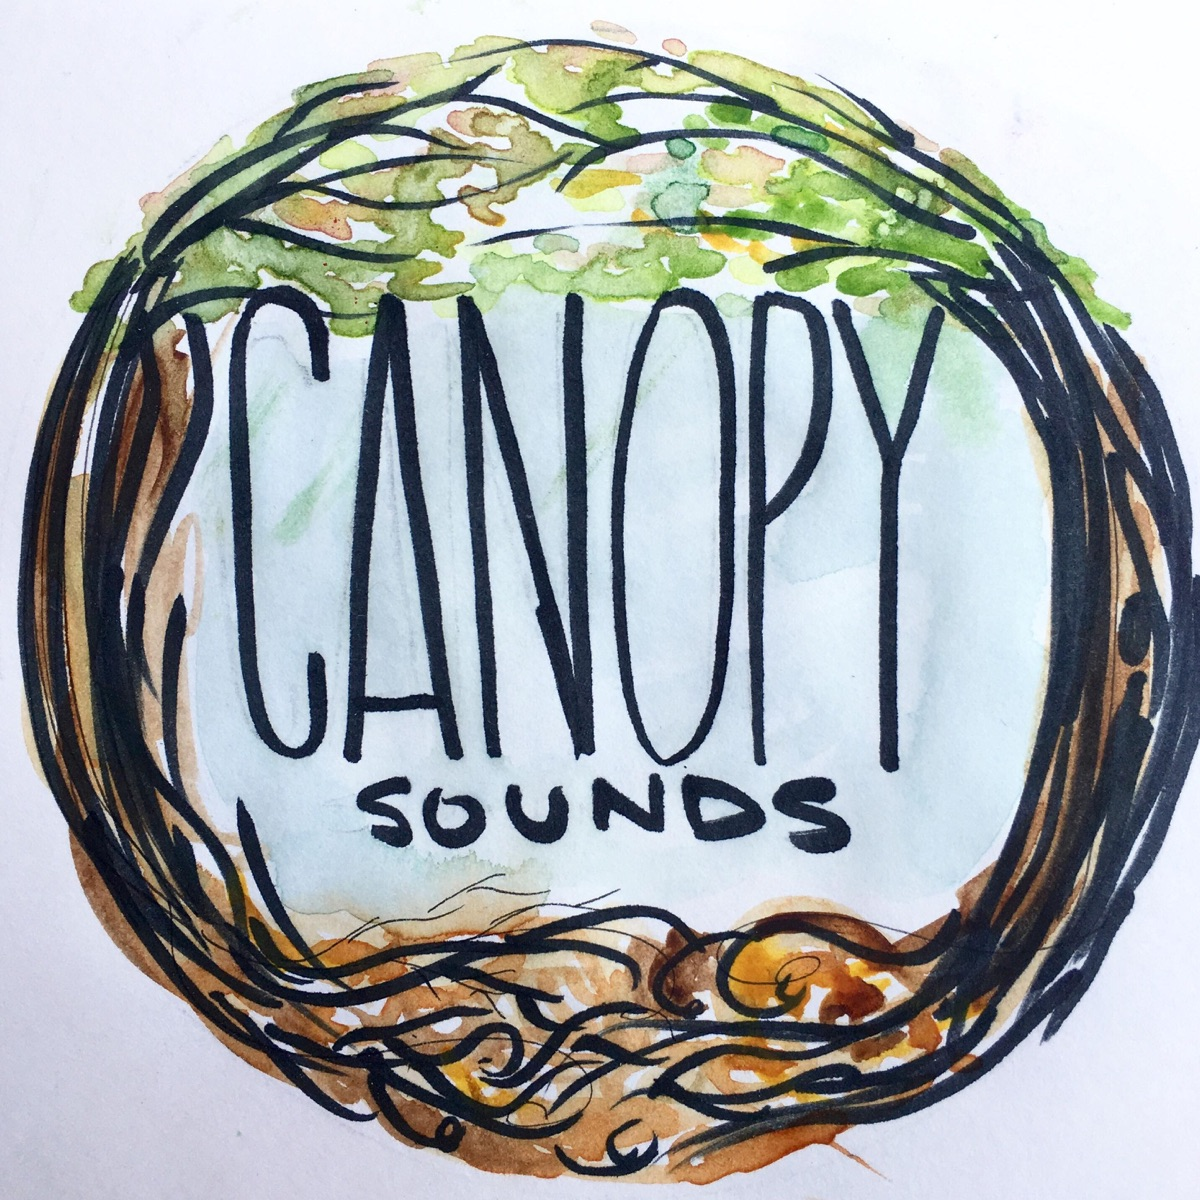 Canopy Sounds 72: Beije